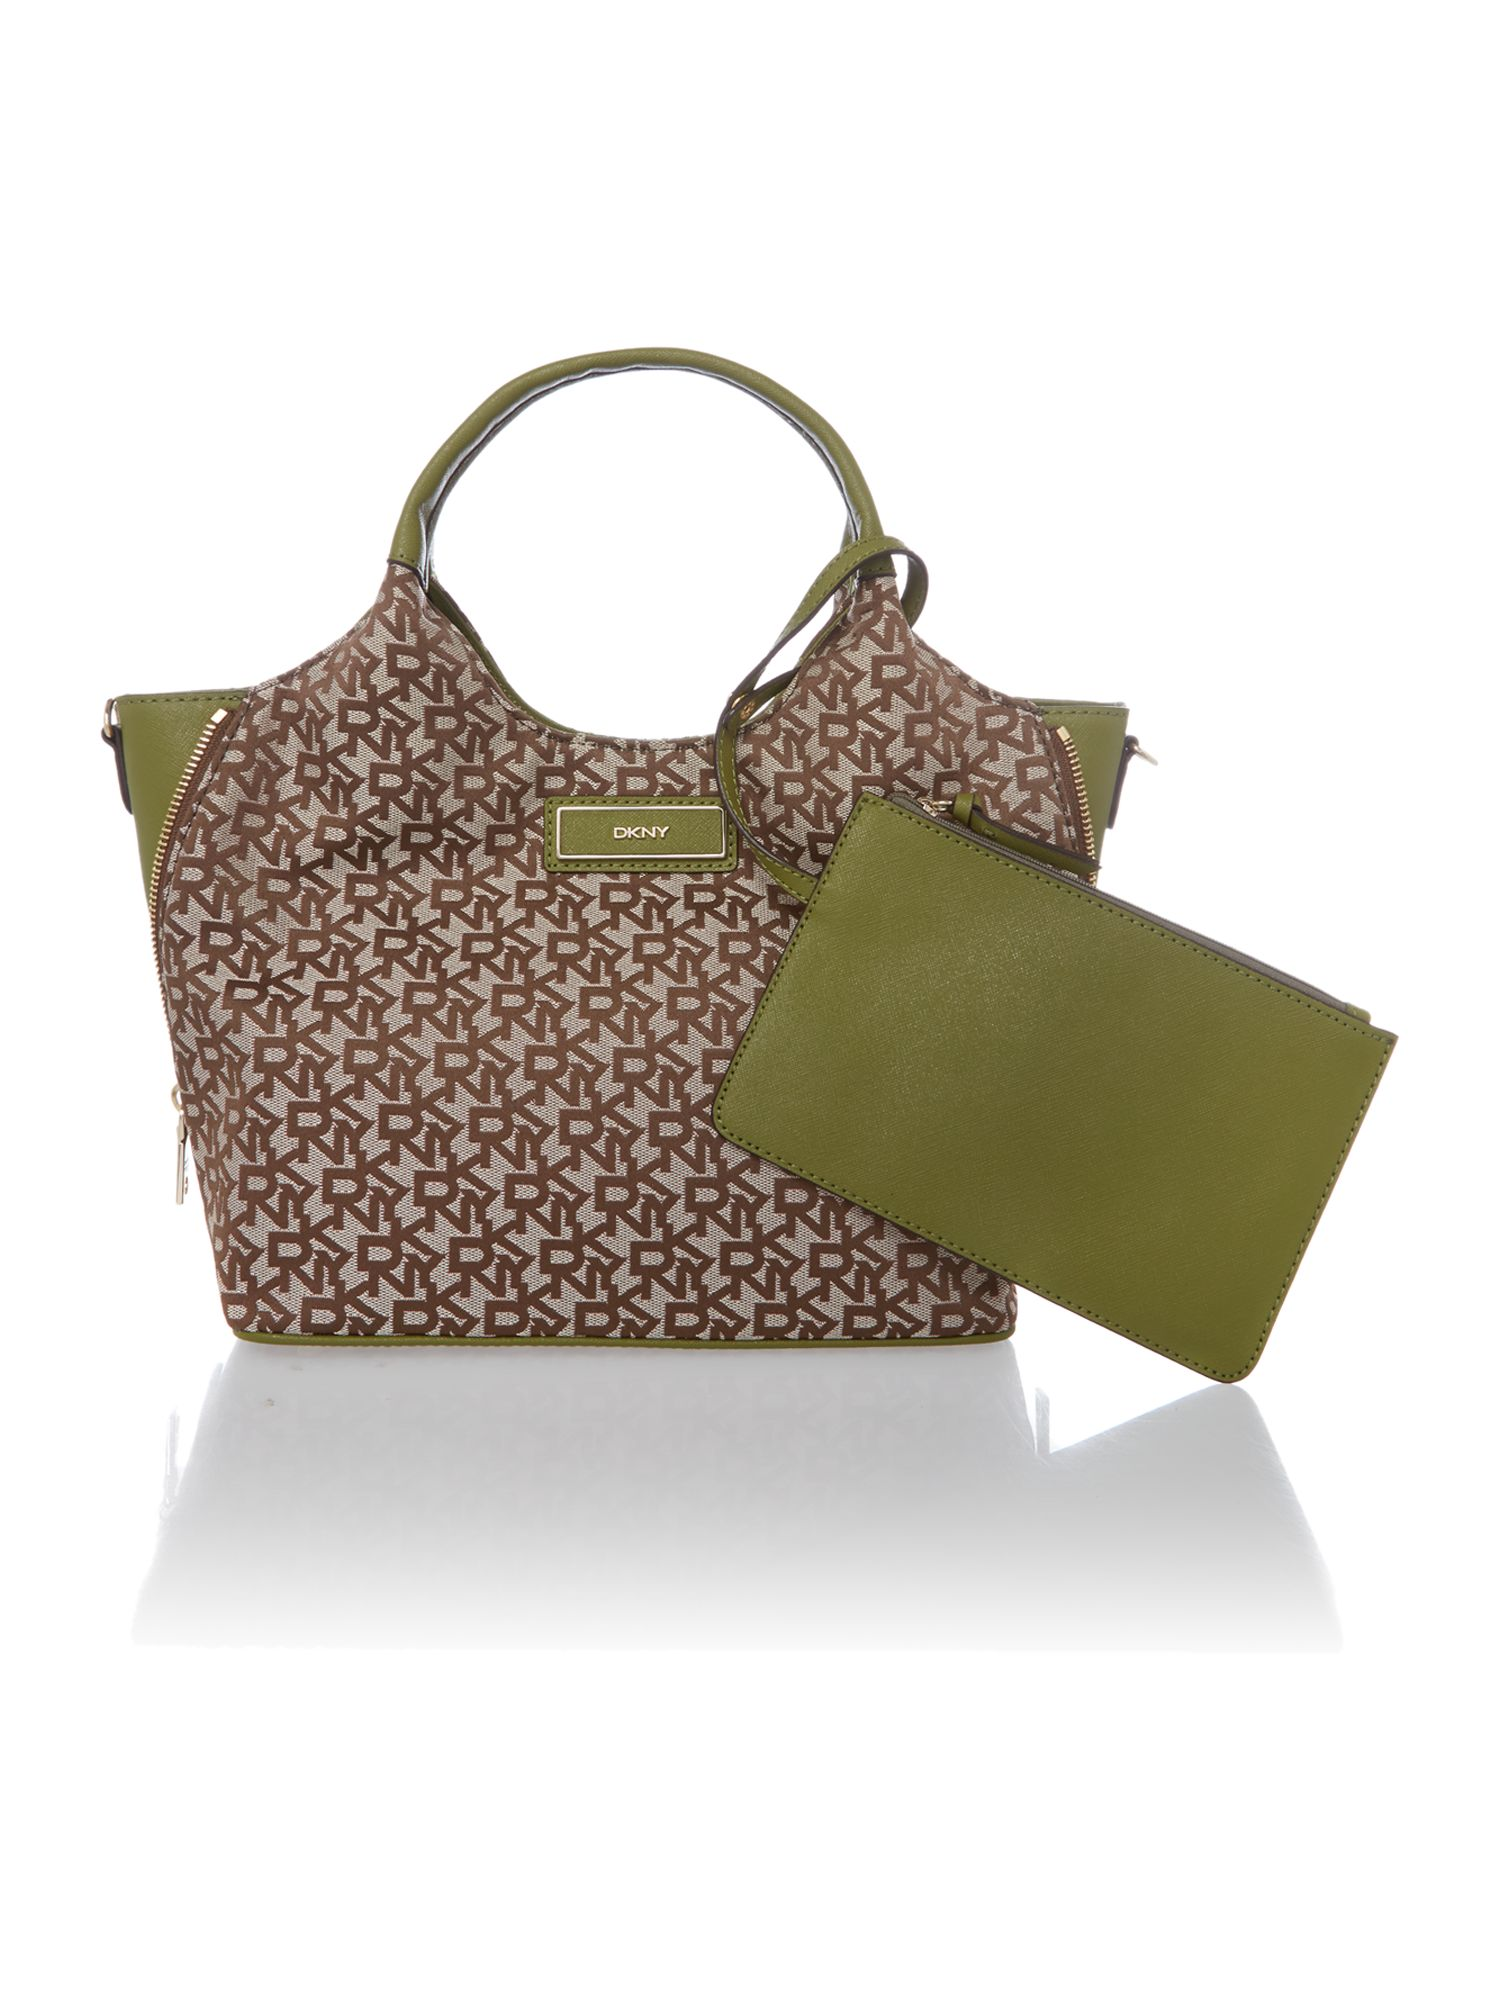 Saffiano green medium tote bag